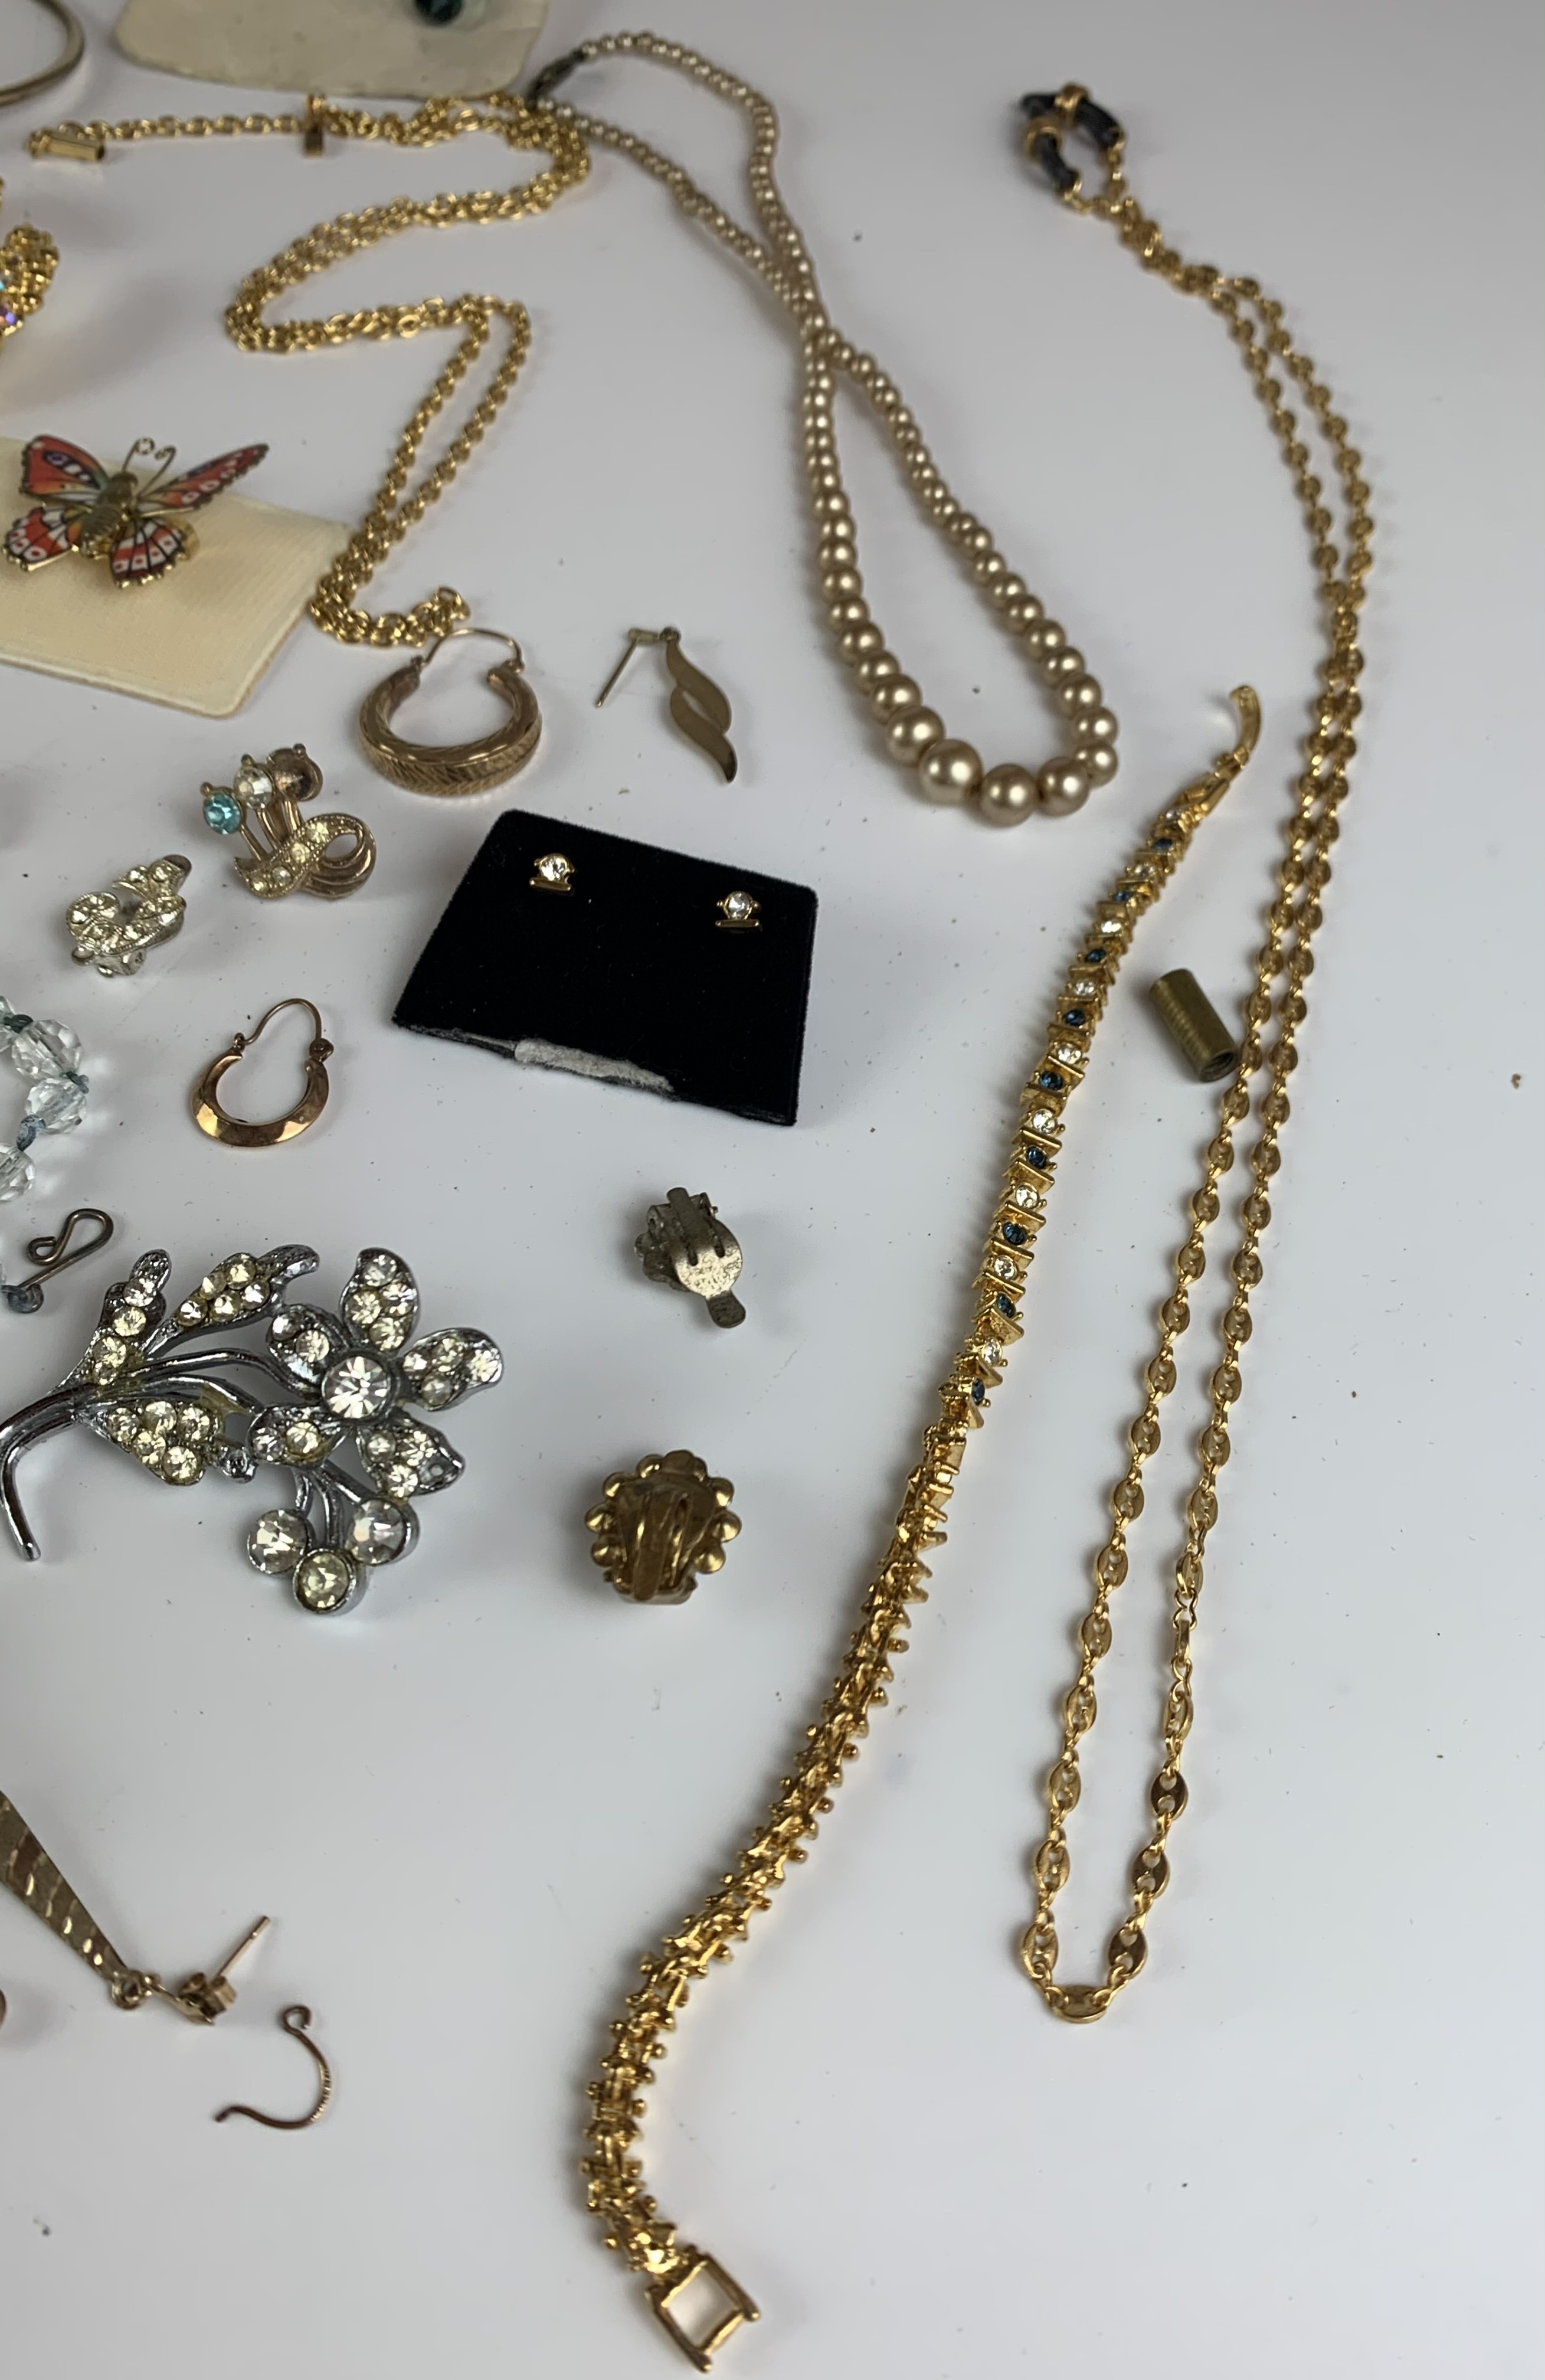 Large bag of assorted dress jewellery including necklaces, bracelets, brooches, earrings etc. - Image 10 of 11